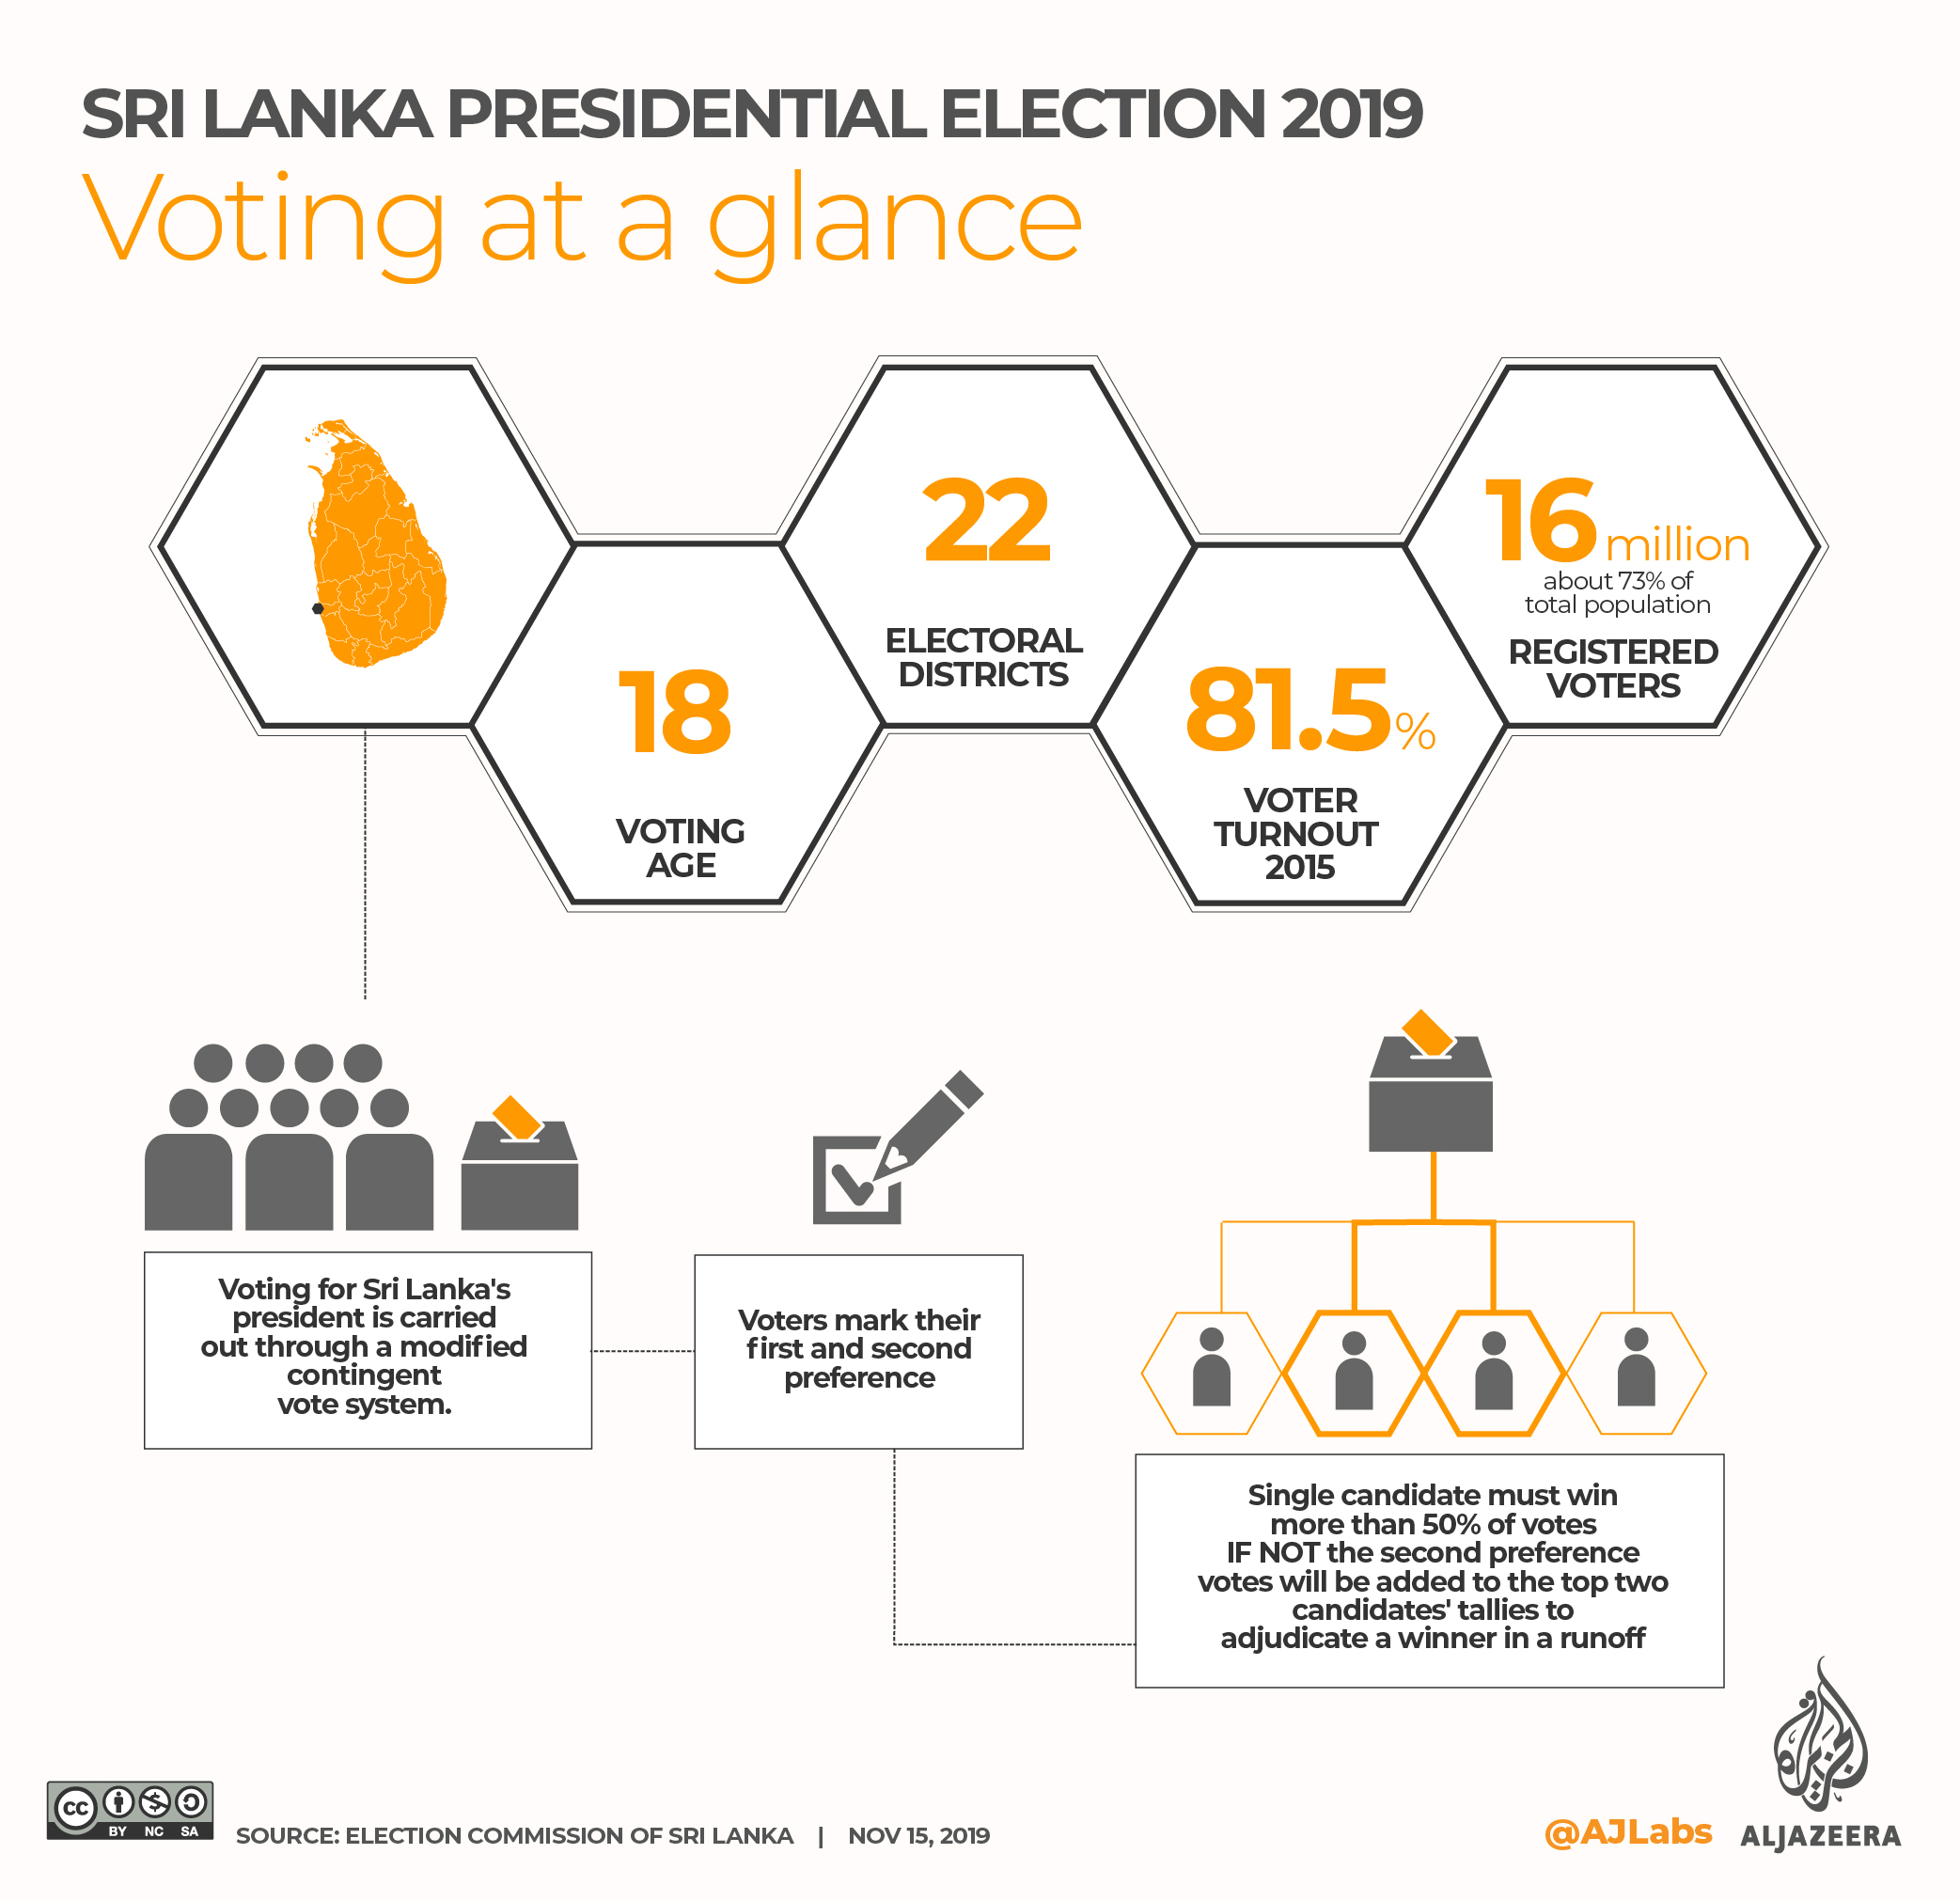 INTERACTIVE: SRI LANKA'S PRESIDENTIAL ELECTIONS 2019 - Voting at a glance